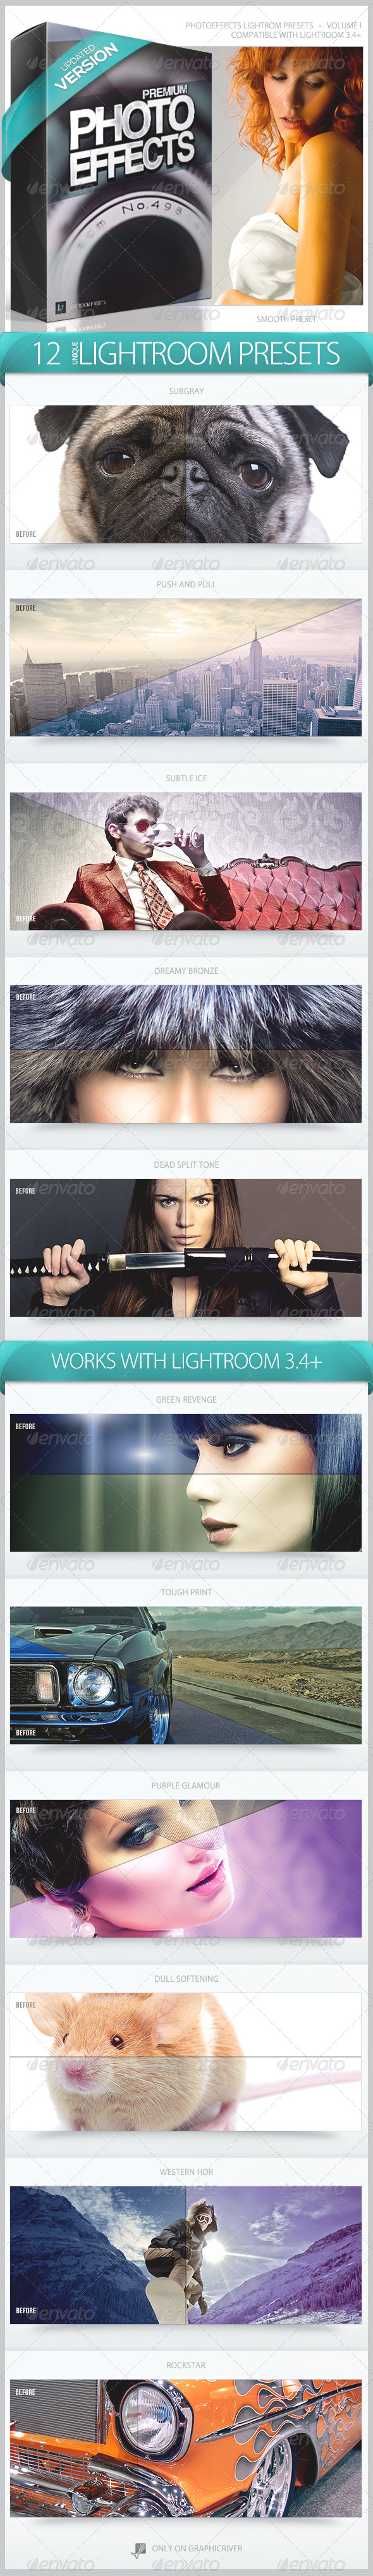 PhotoEffects Lightroom Presets Volume 1 - Lightroom Presets Add-ons